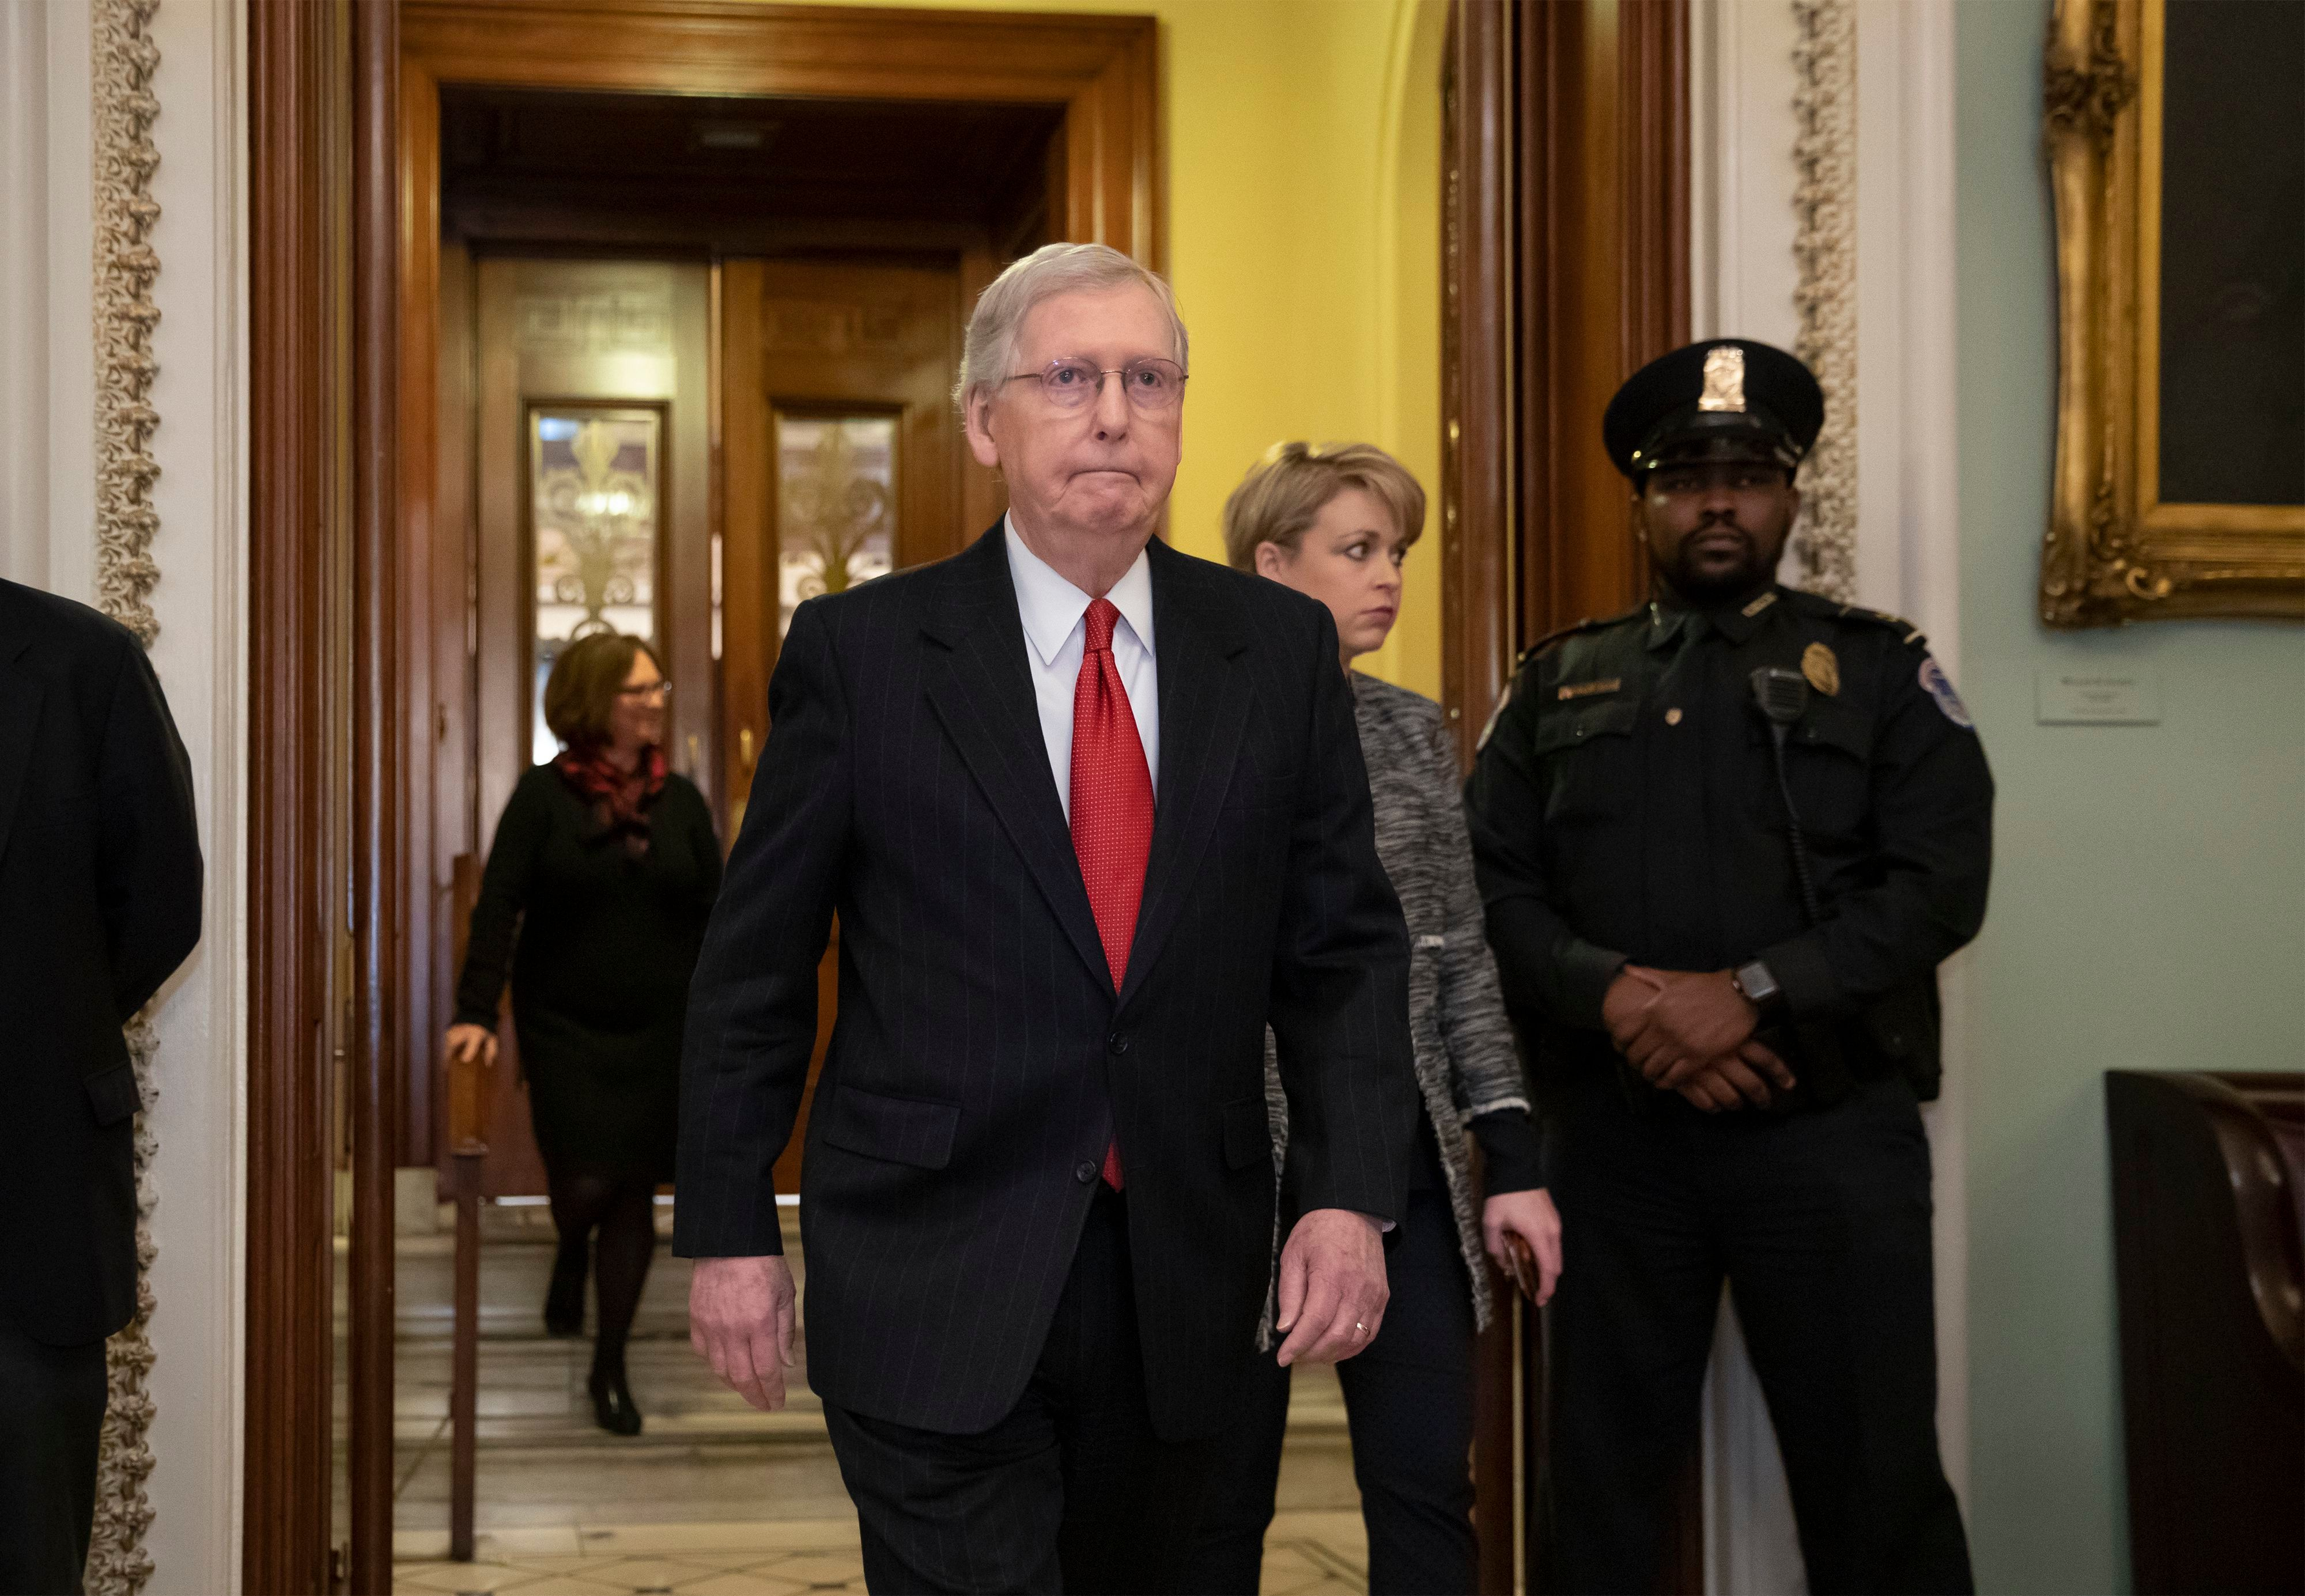 Senate Majority Leader Mitch McConnell steps out of the chamber prior to a vote on ending the partial government shutdown, at the Capitol in Washington, D.C. on Jan. 24, 2019.